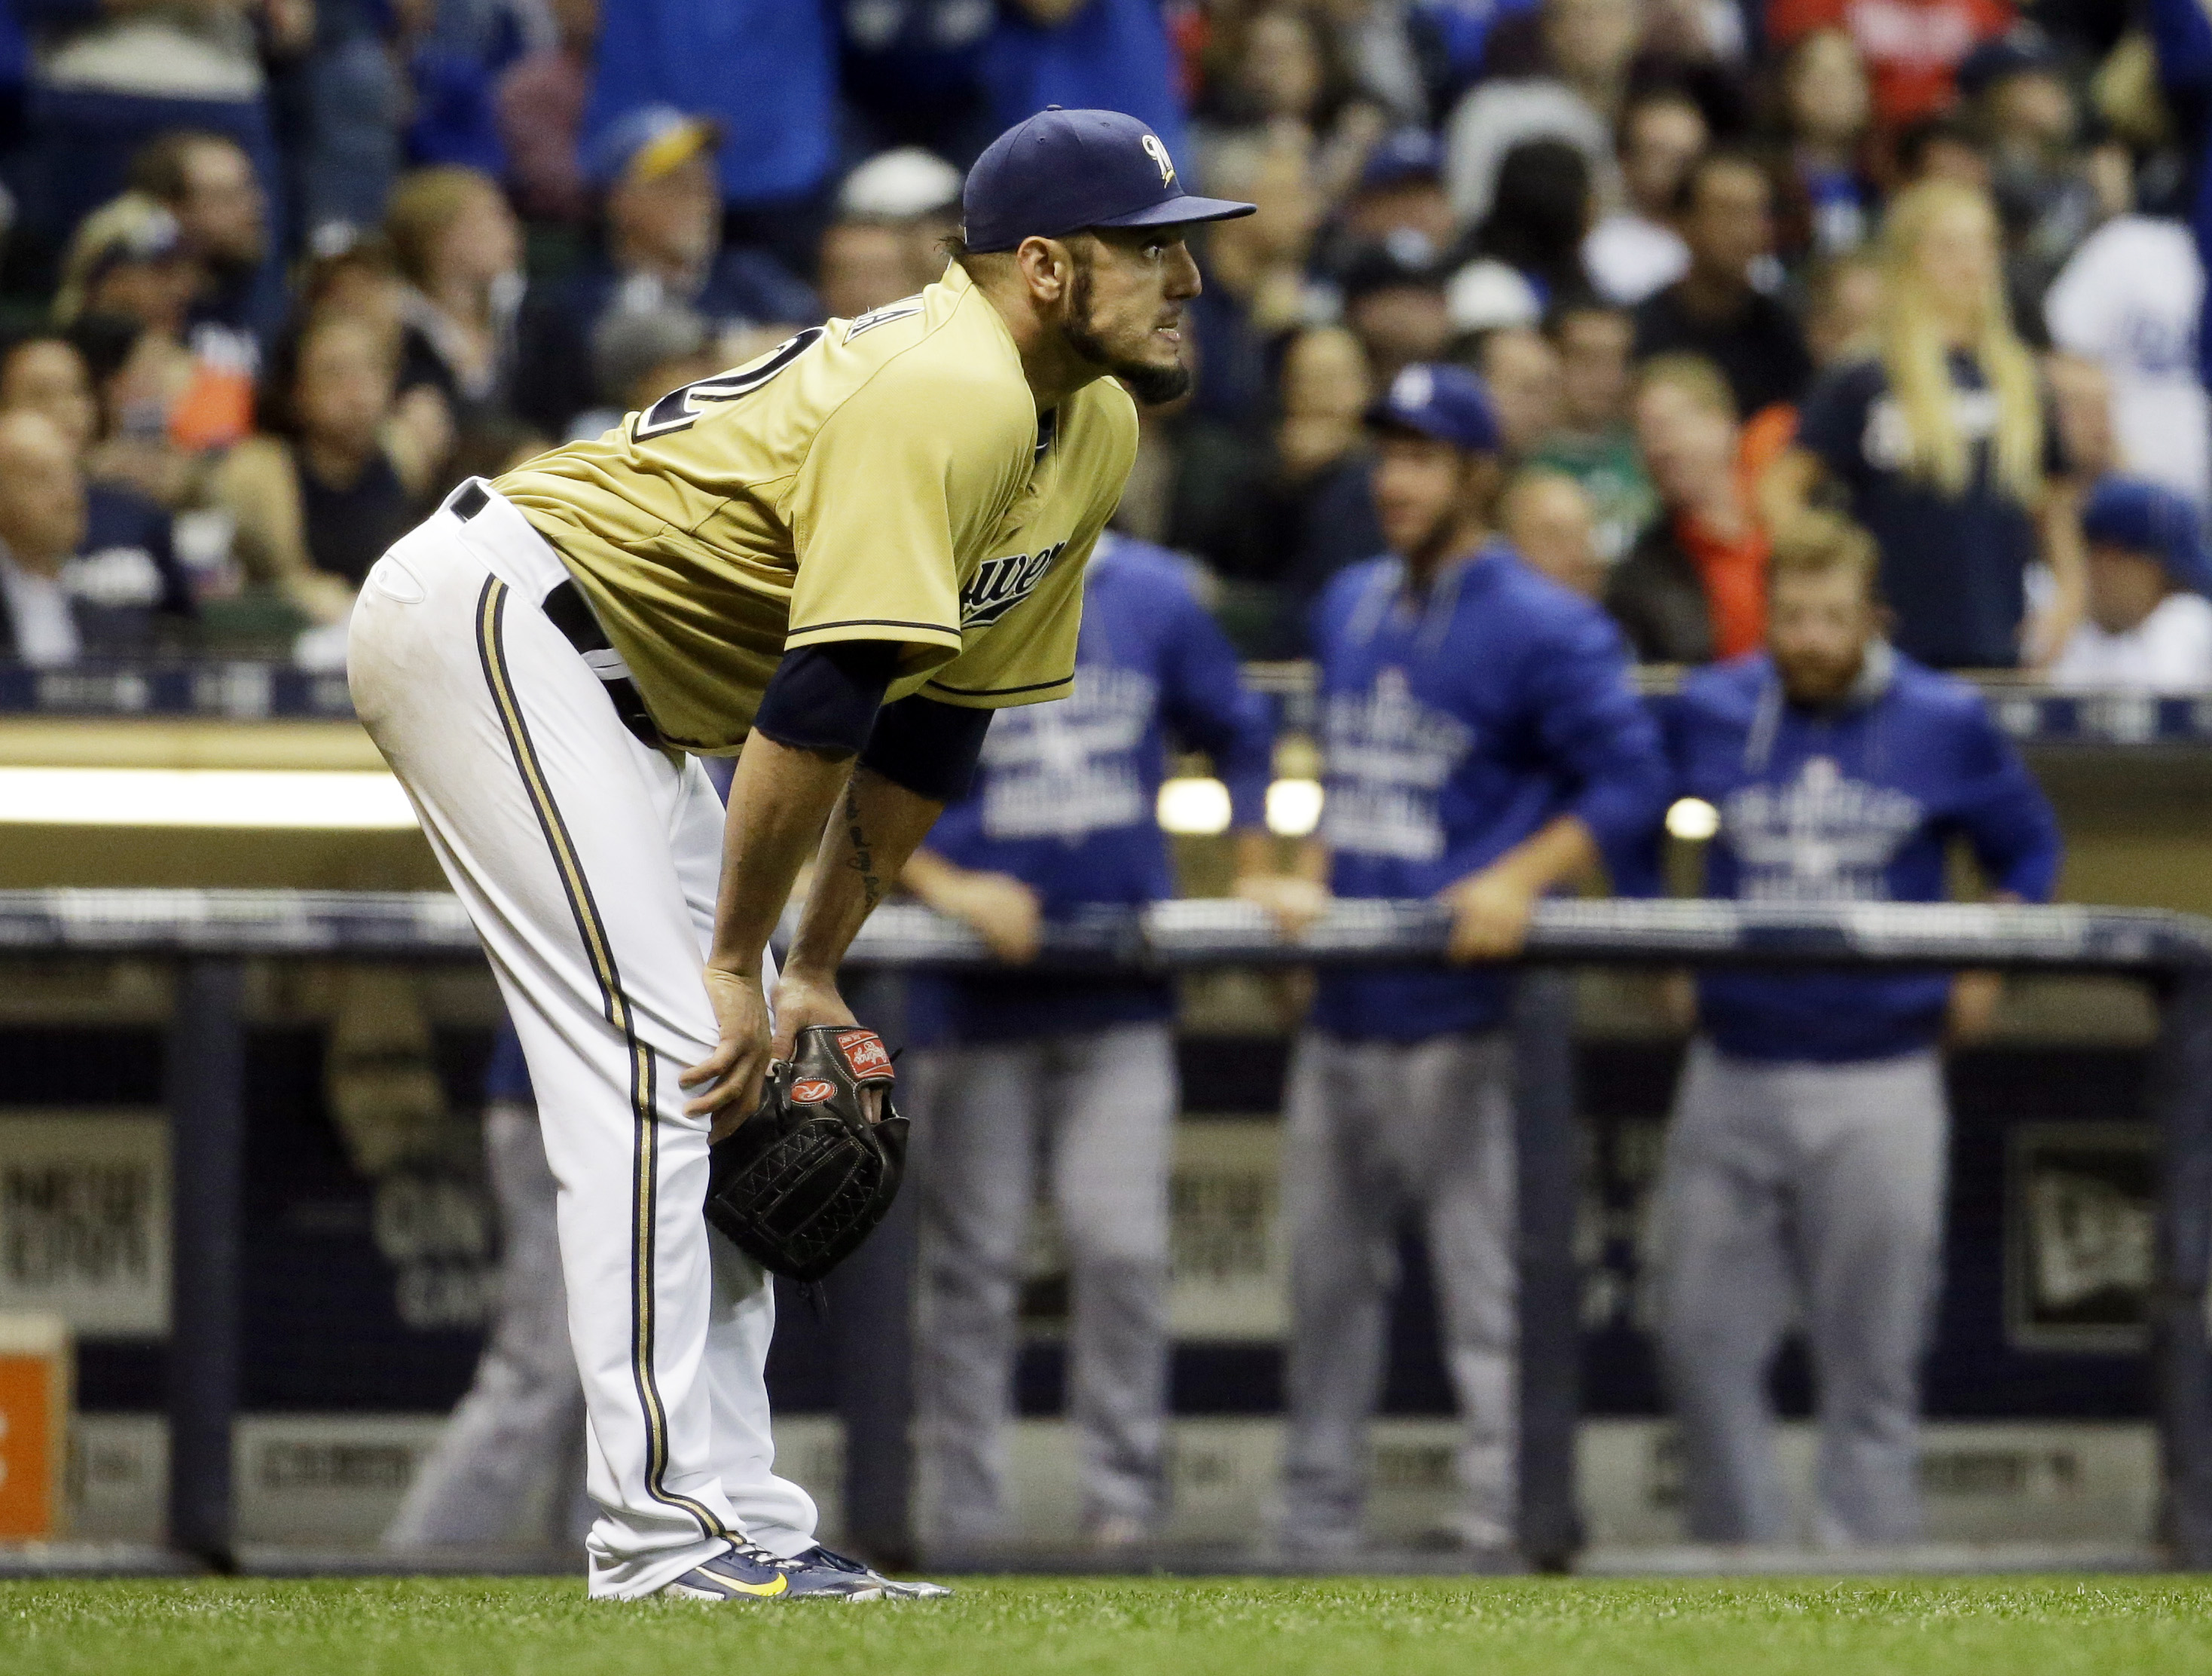 Milwaukee Brewers starting pitcher Matt Garza reacts after giving up a three-run home run to Los Angeles Dodgers' Justin Turner during the sixth inning of a baseball game Tuesday, May 5, 2015, in Milwaukee. (AP Photo/Morry Gash)